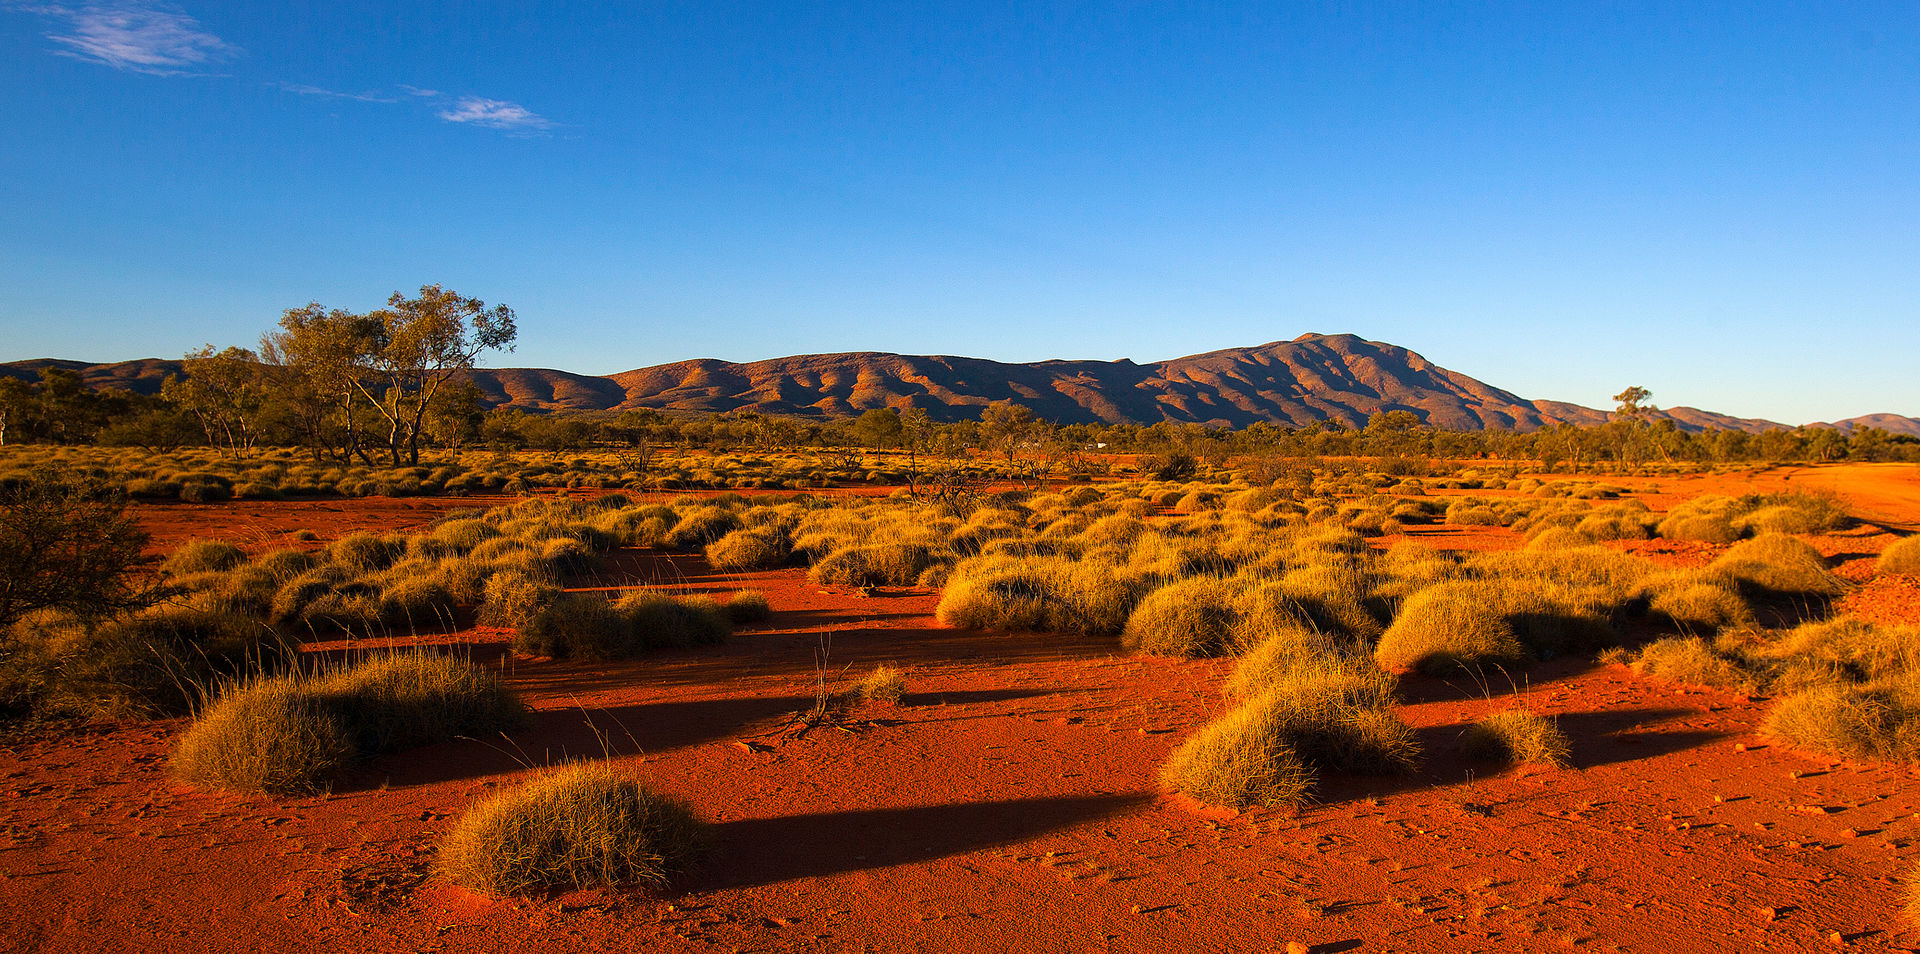 Outback Australia: The Colour of Red